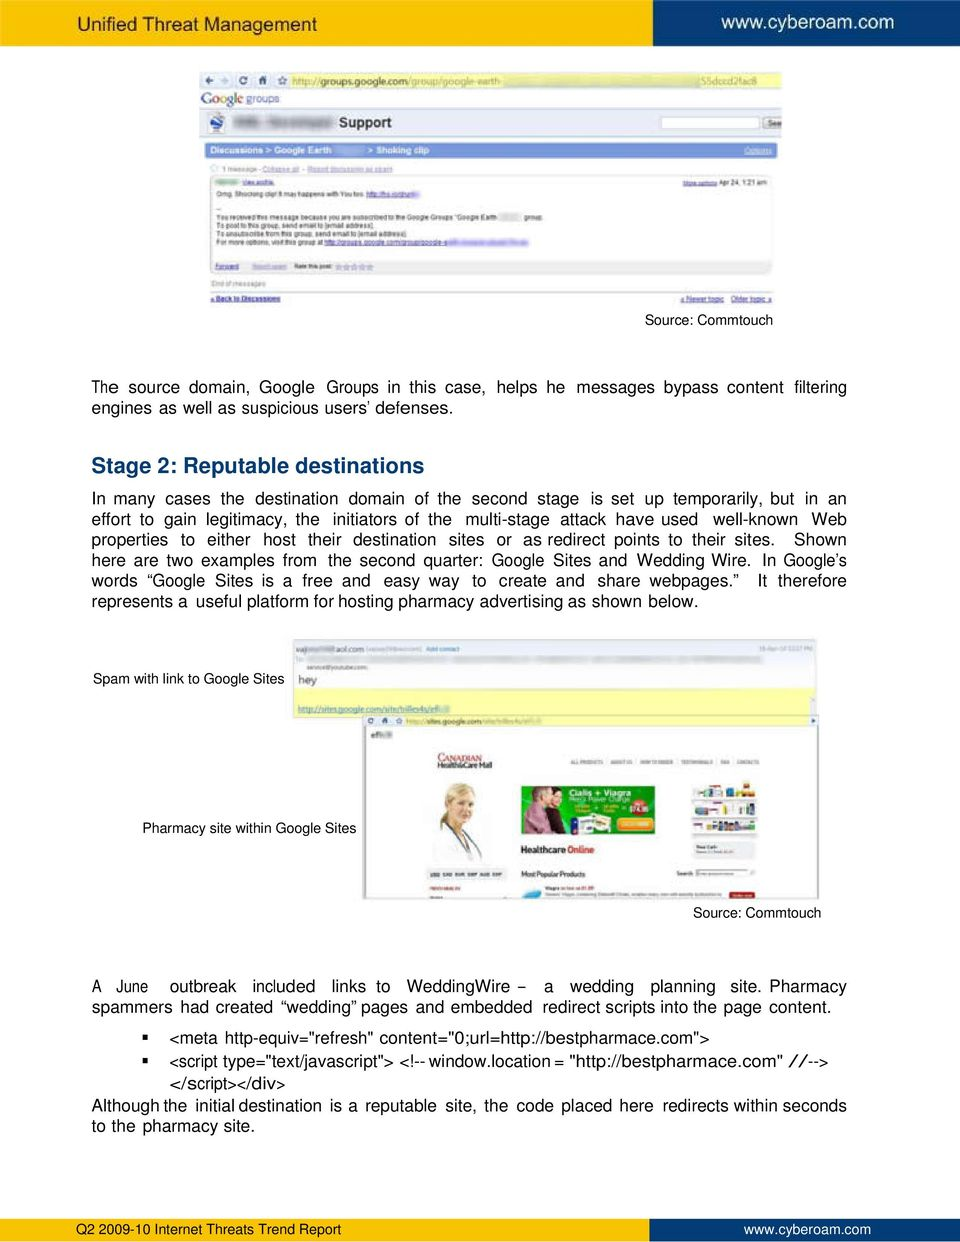 well-known Web properties to either host their destination sites or as redirect points to their sites. Shown here are two examples from the second quarter: Google Sites and Wedding Wire.